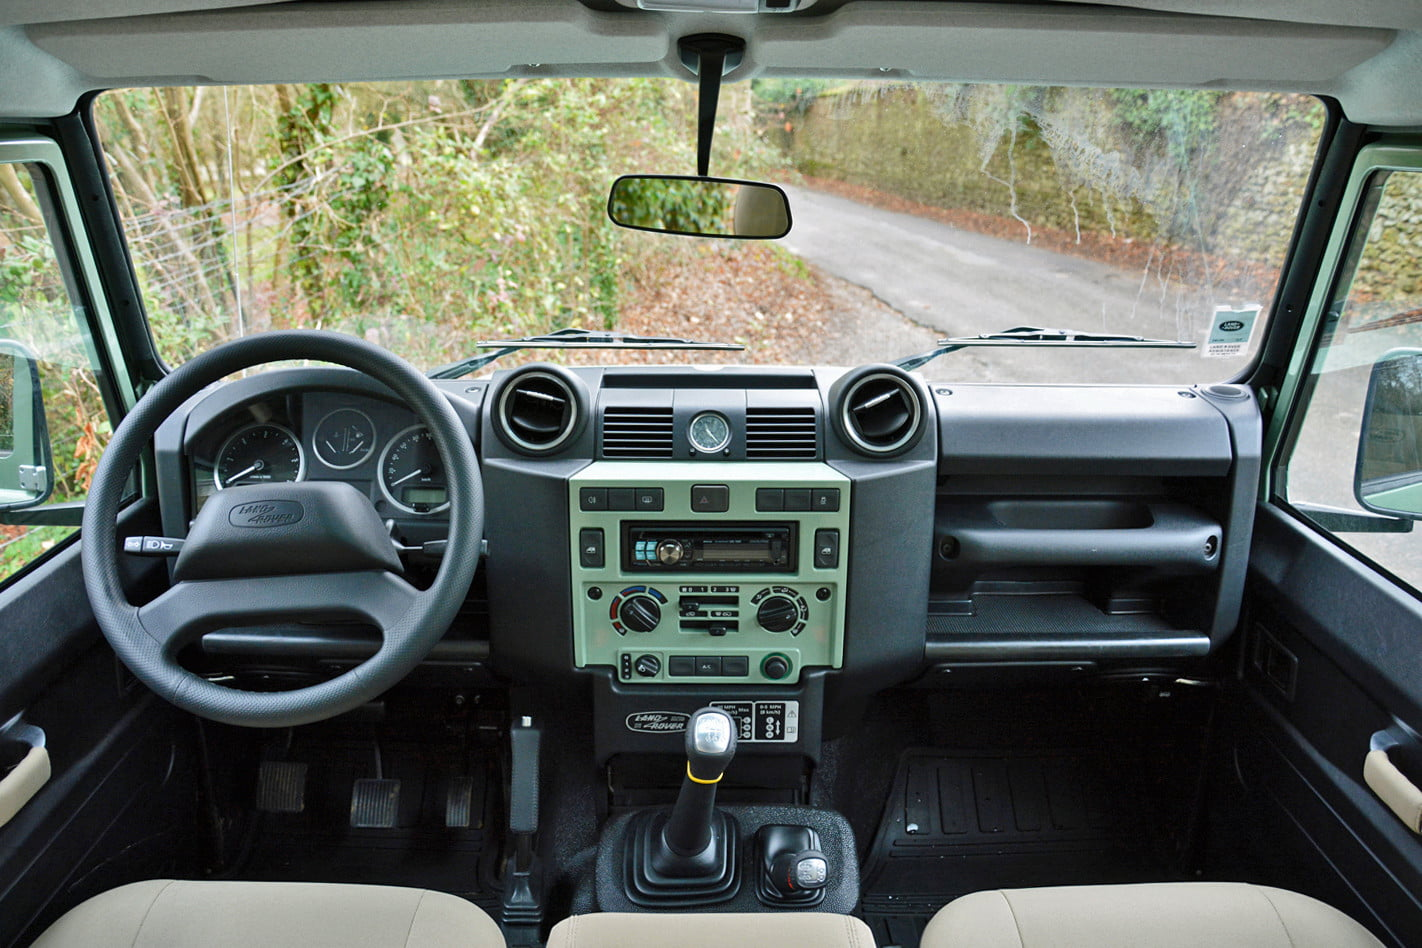 2015 Land Rover Defender Review on Pound Words